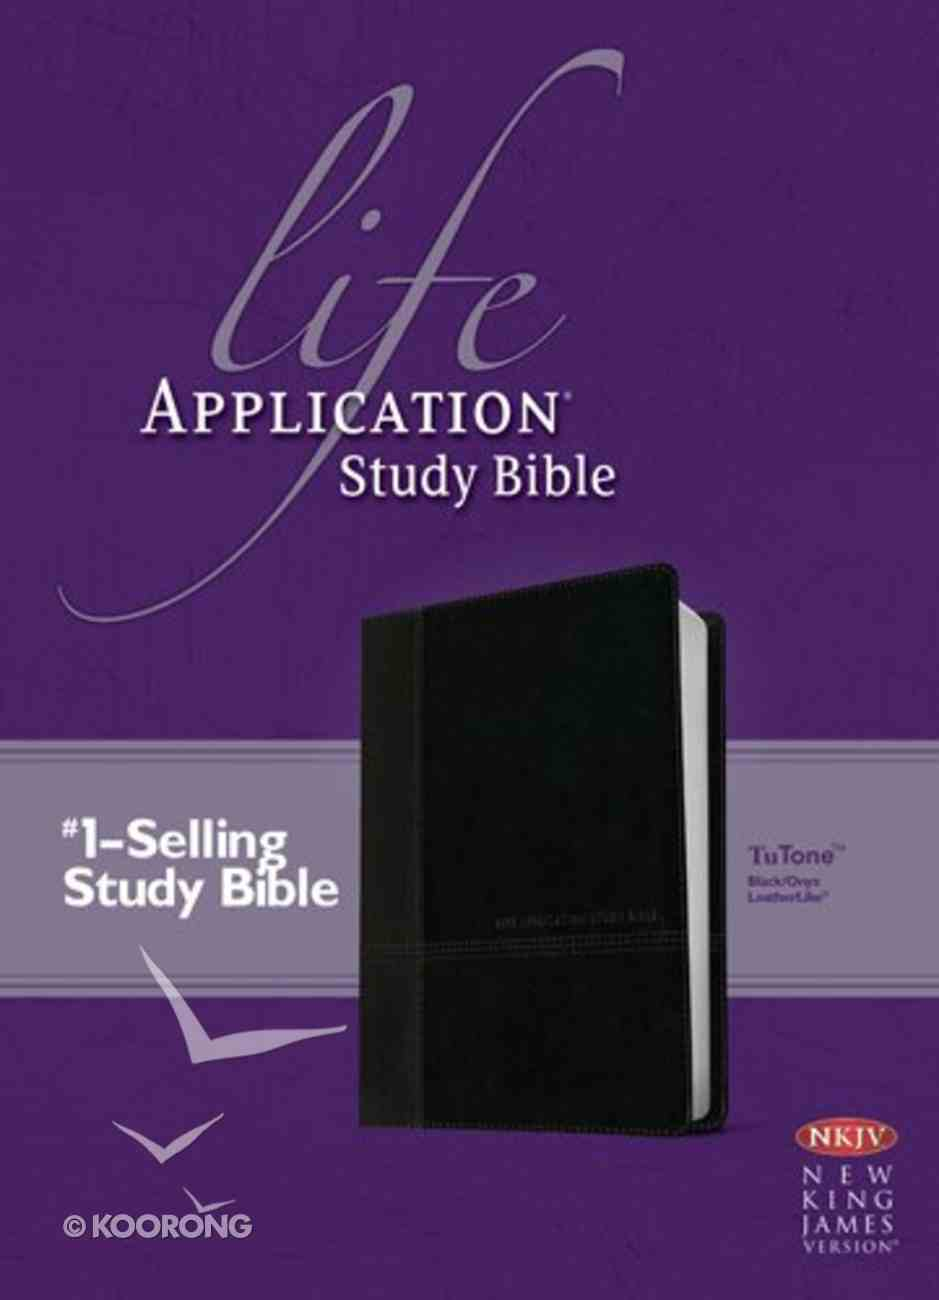 NKJV Life Application Study Bible Black/Onyx (Red Letter Edition) Imitation Leather